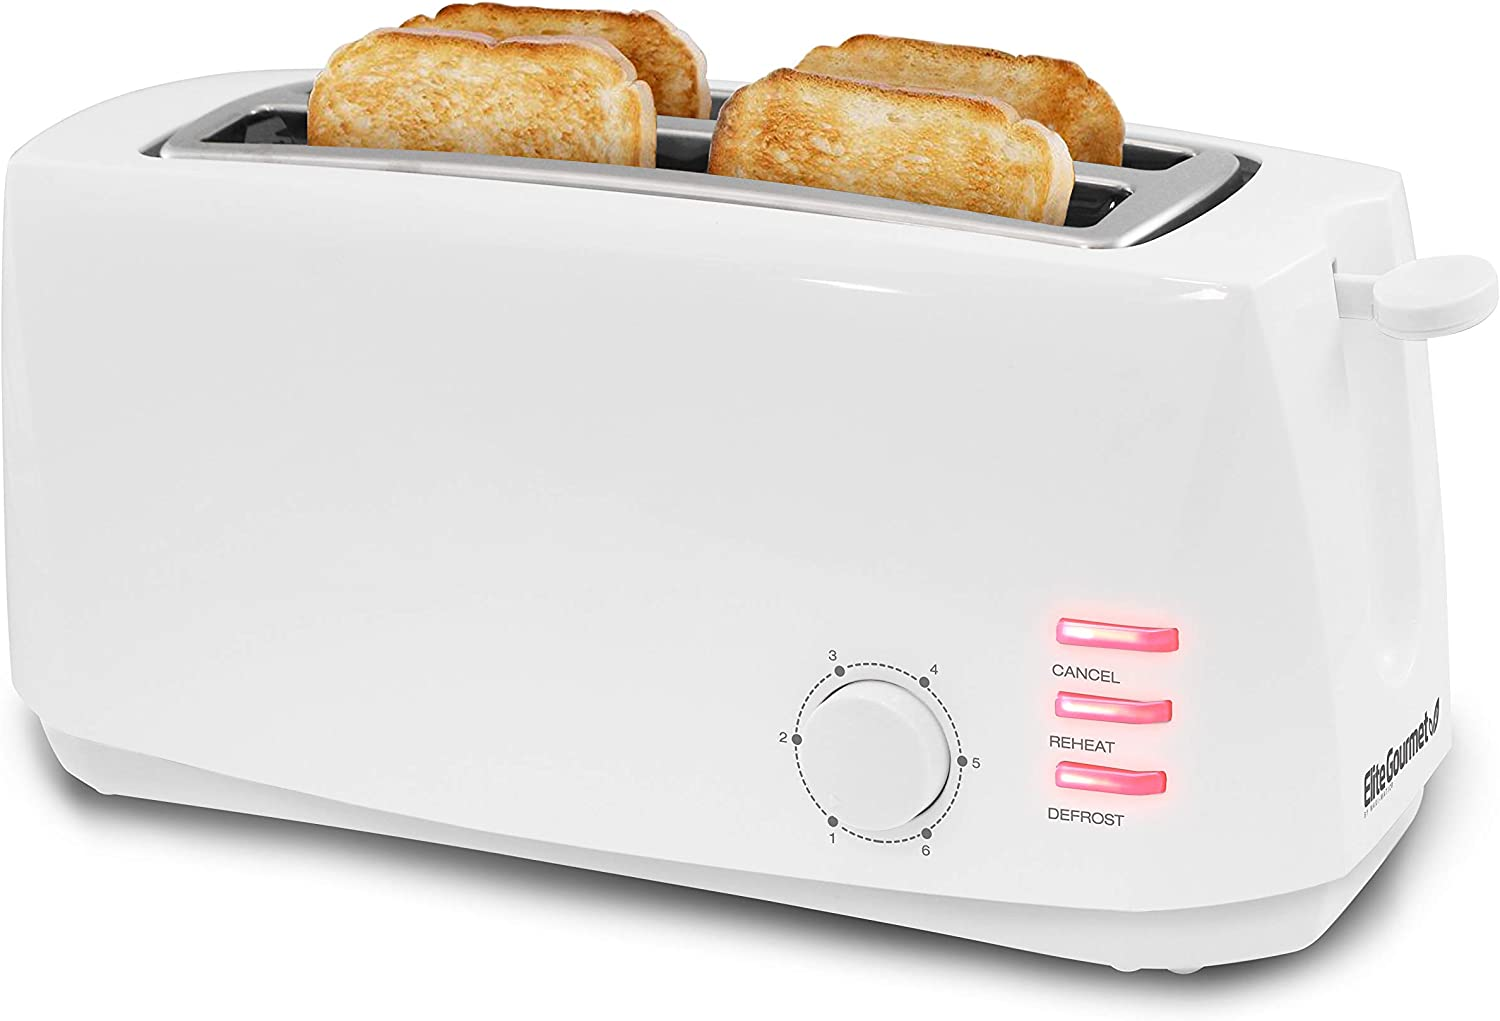 Elite Gourmet ECT-4829 Maxi-Matic 4 Slice Long Toaster 6 Toast Settings, Defrost, Reheat, Cancel Functions, Extra Wide 1.5